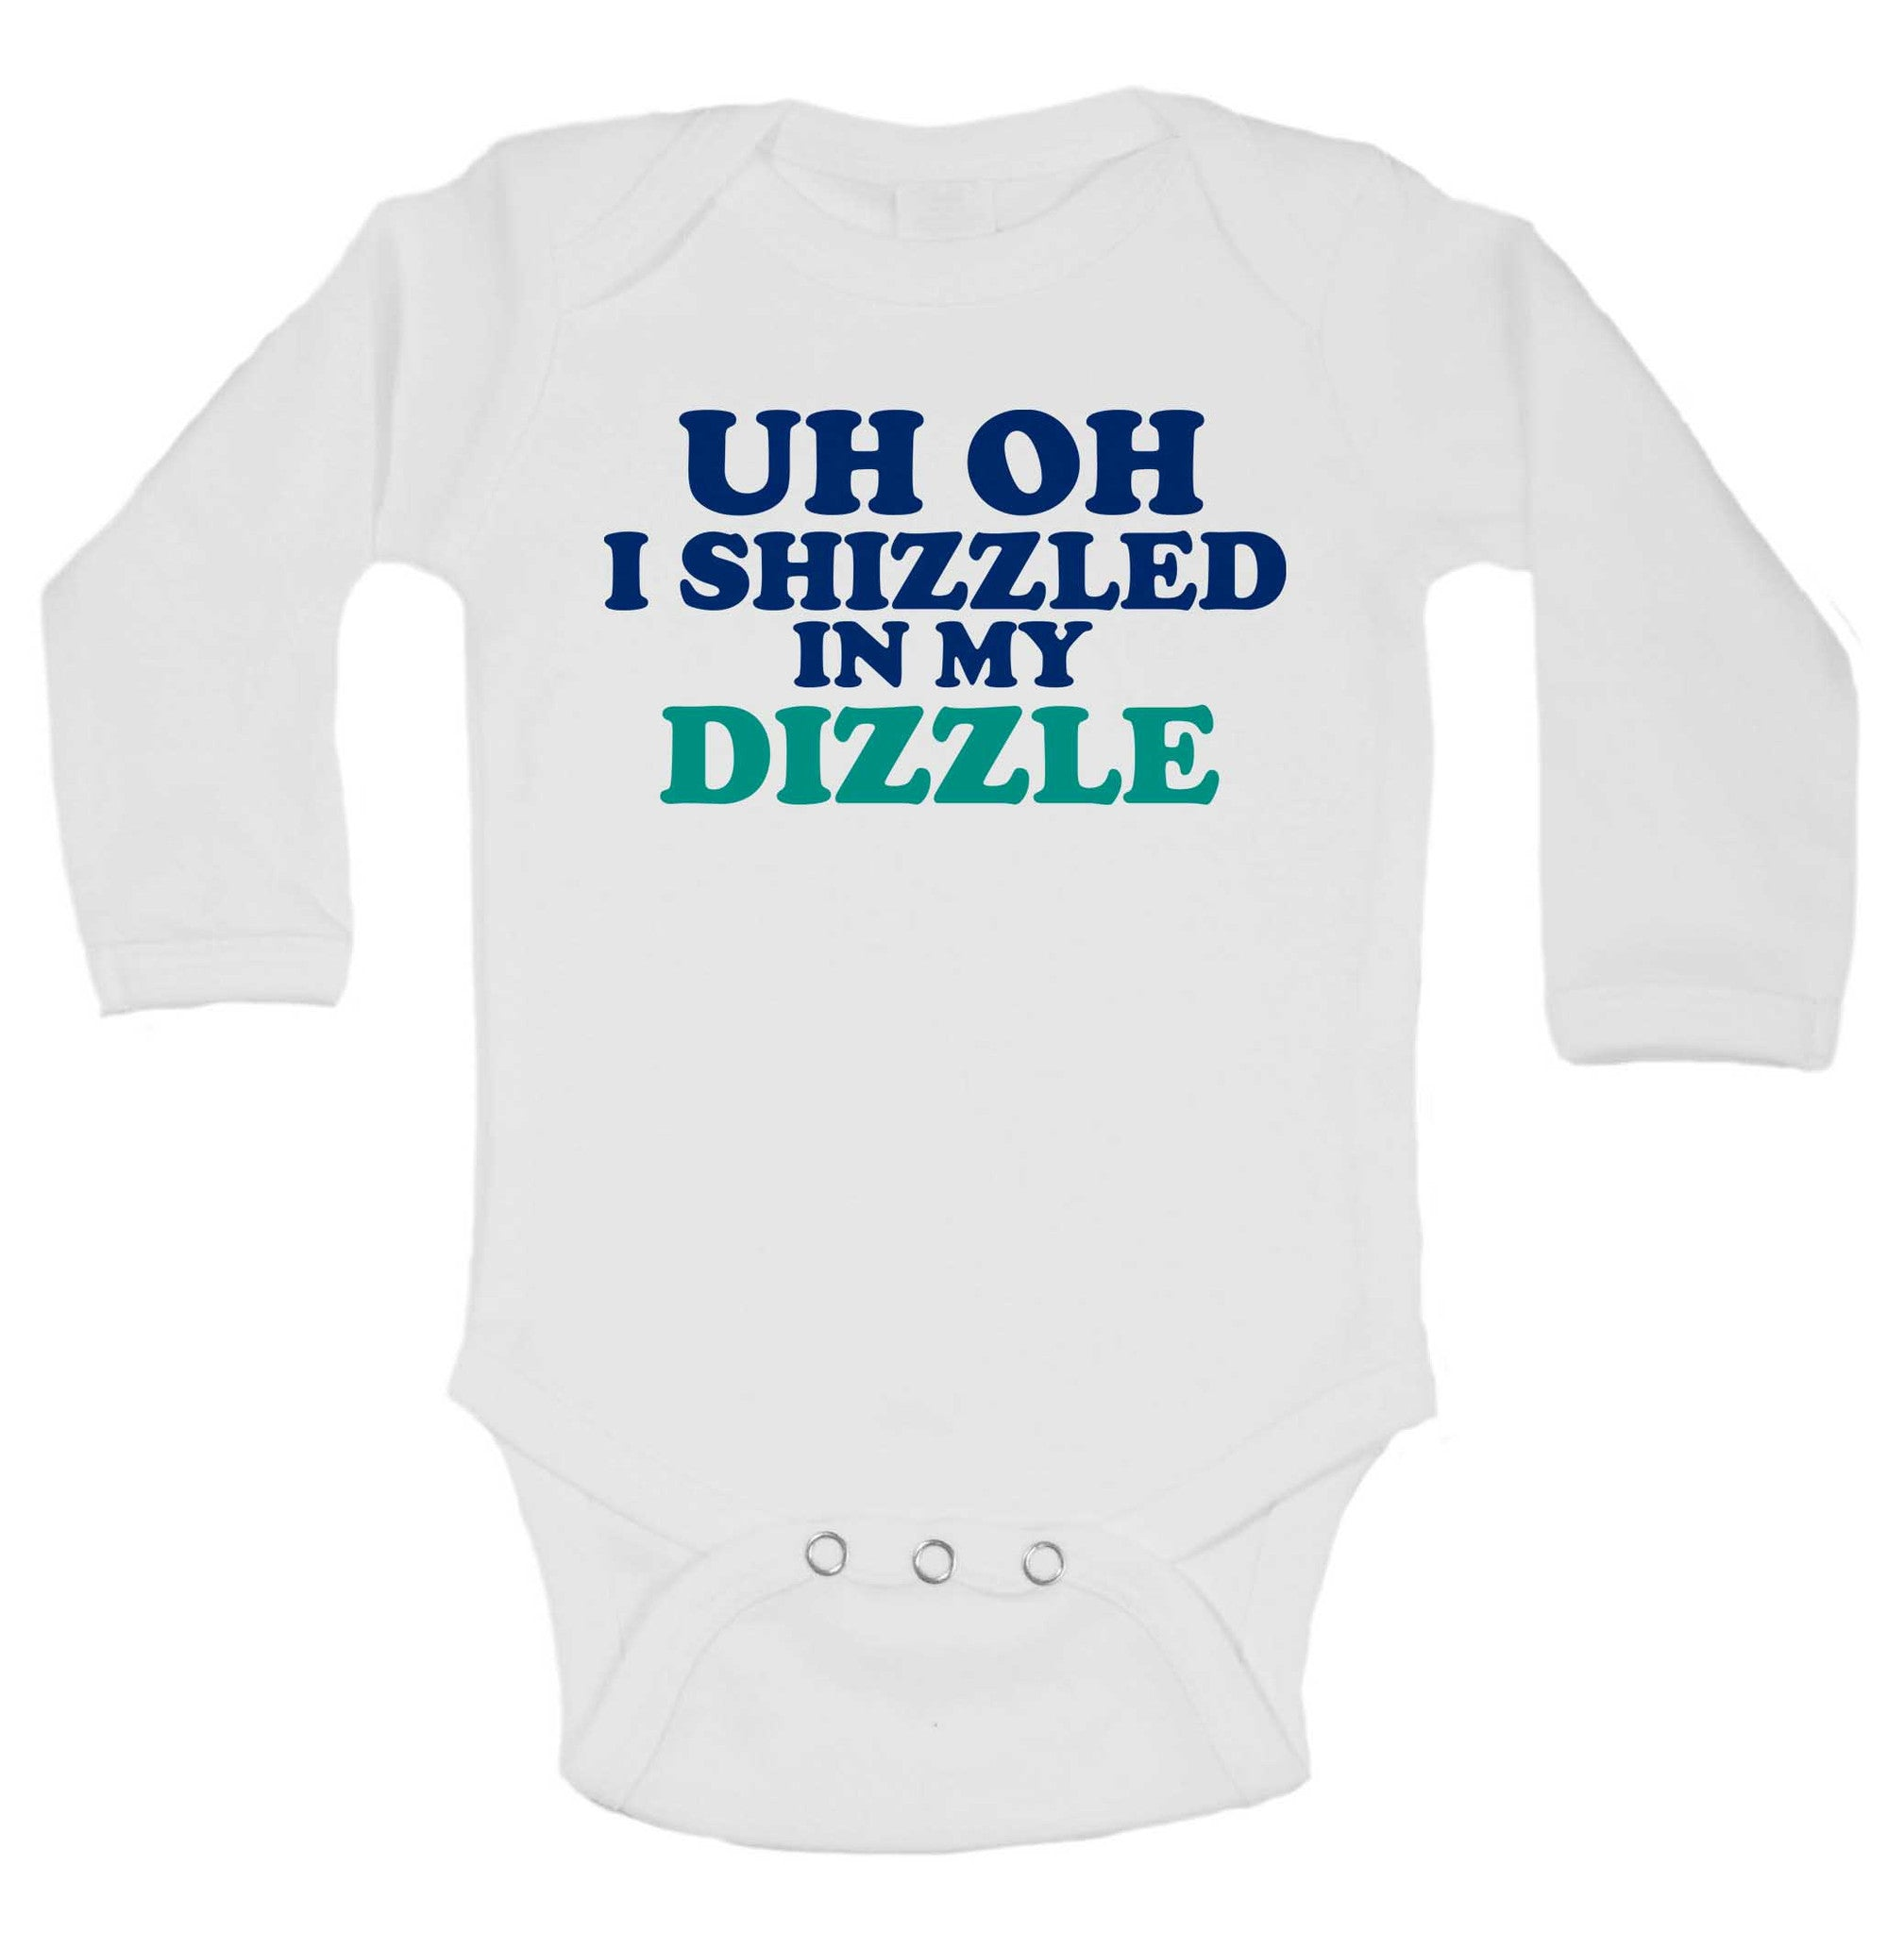 Uh Oh I Shizzled In My Dizzle Funny Kids Onesie - 219 - Funny Shirts Tank Tops Burnouts and Triblends  - 1